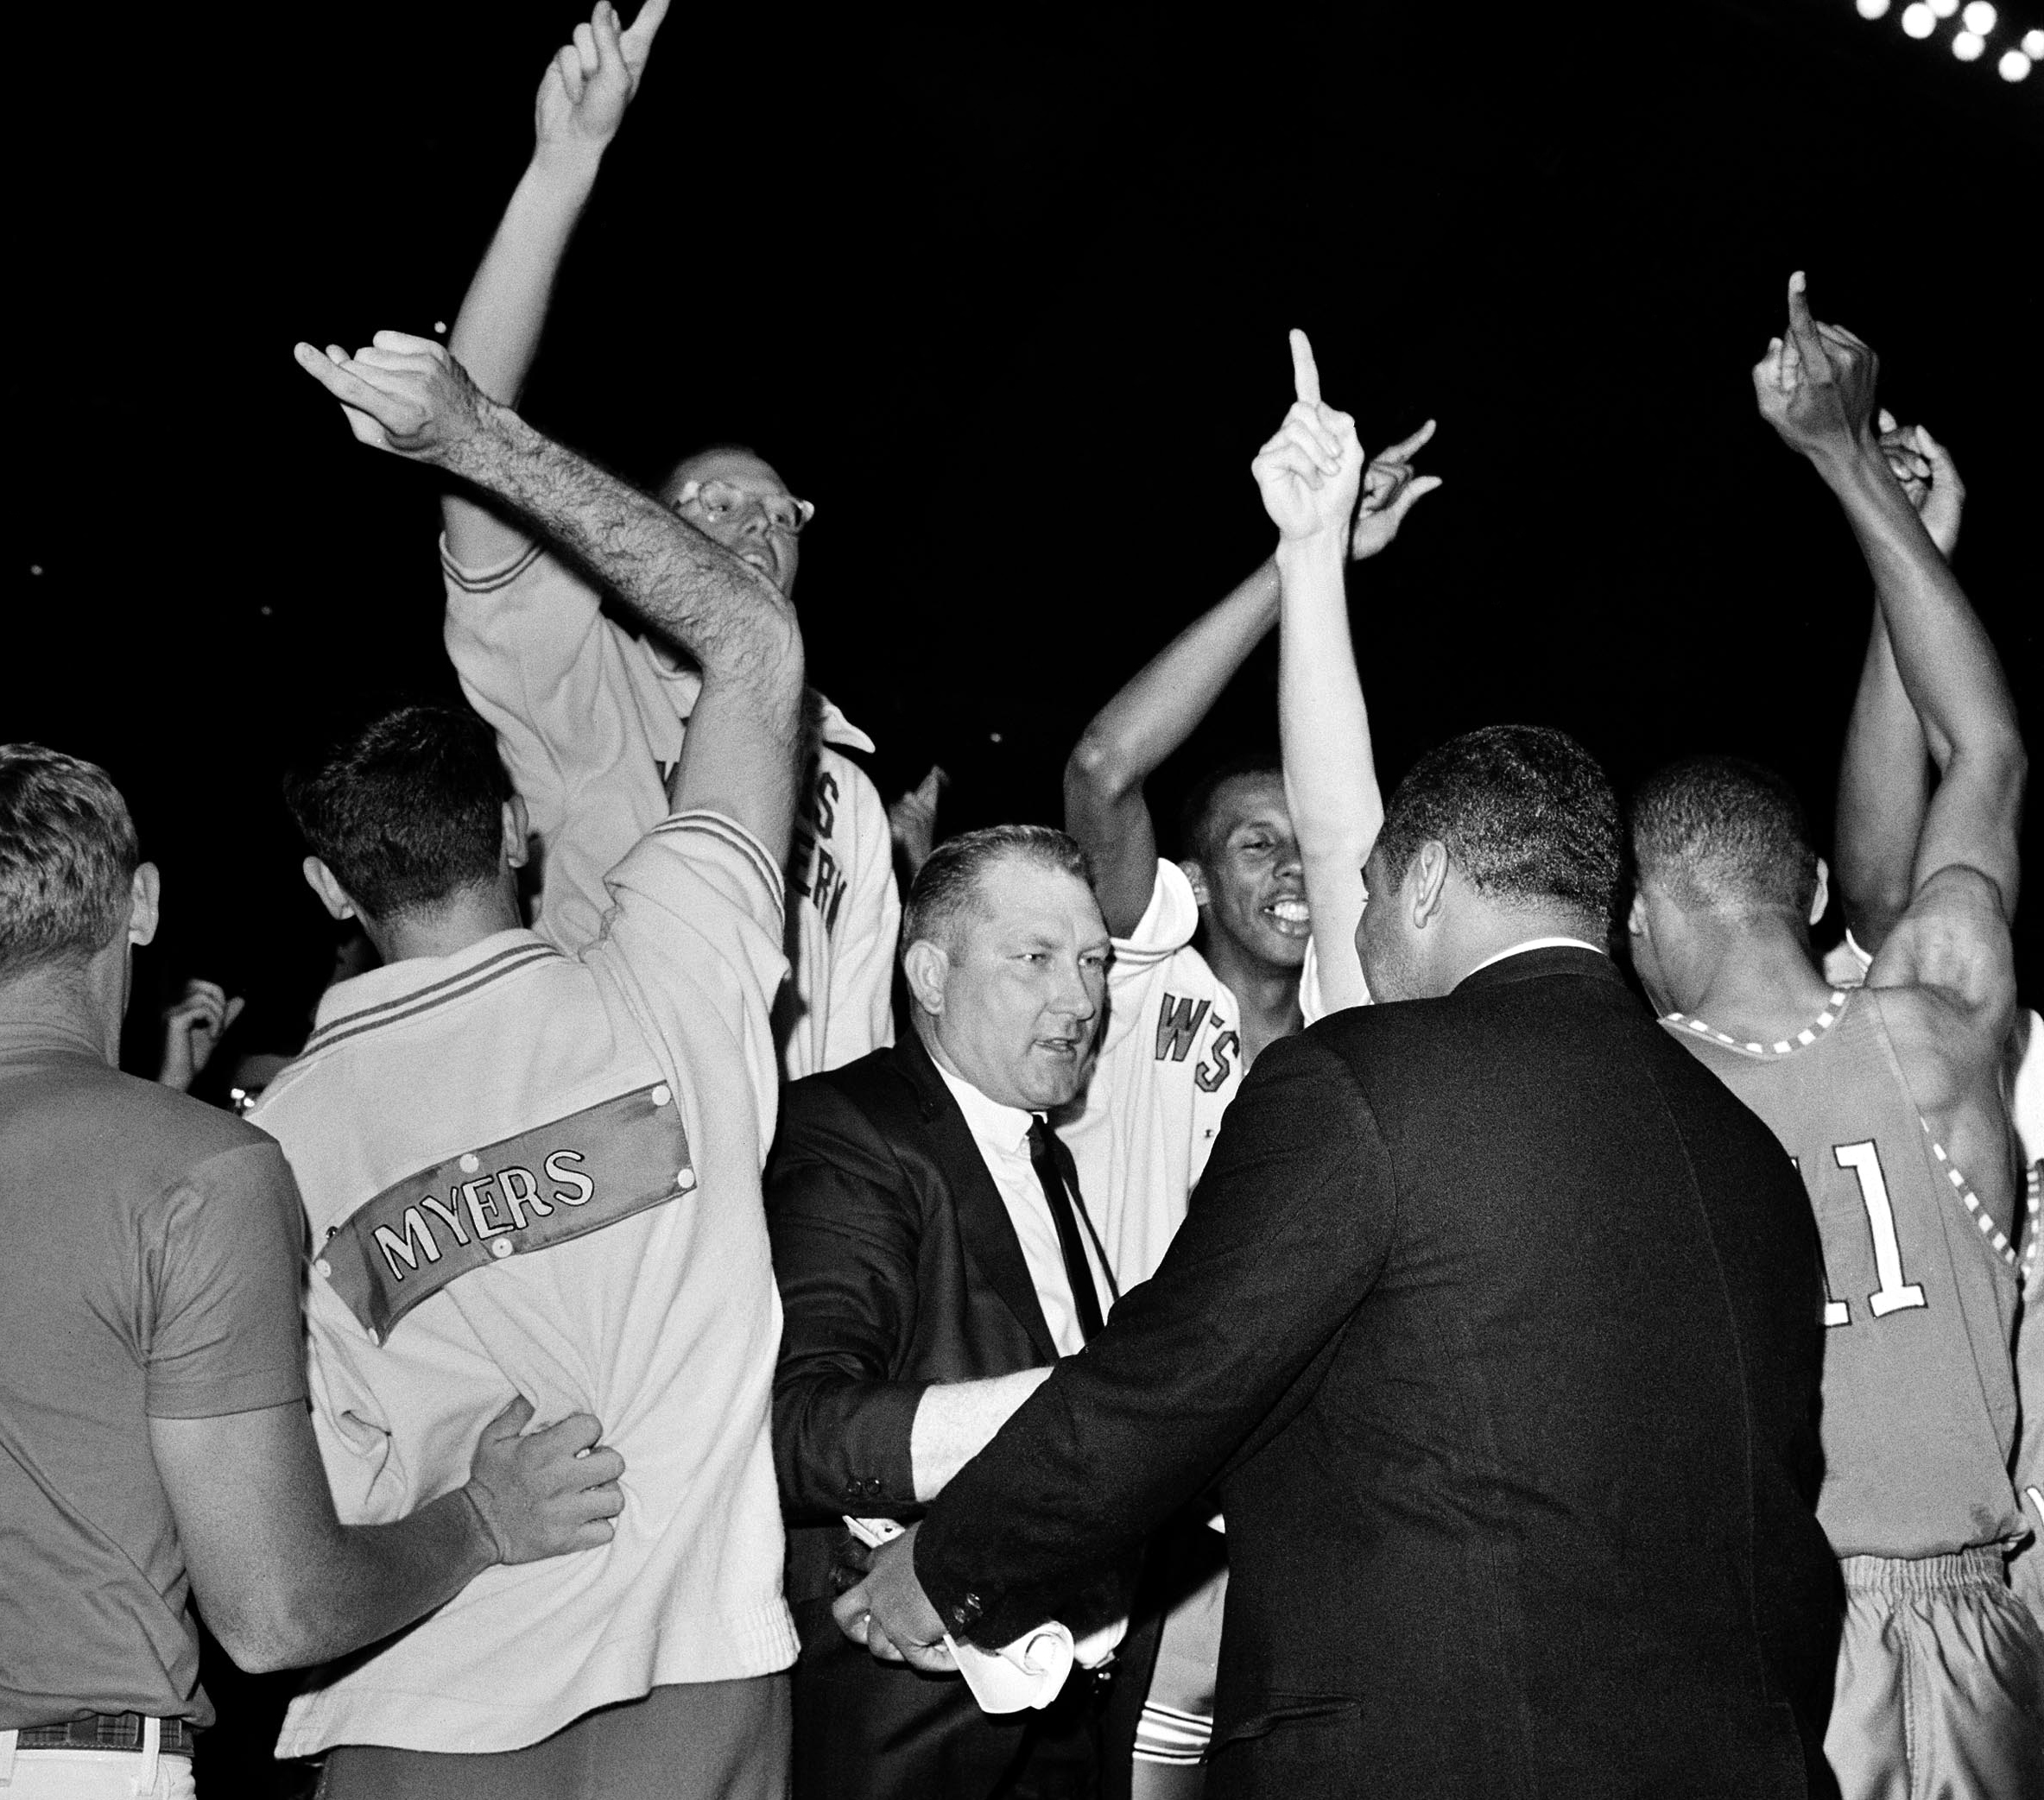 FILE - In this March 19, 1996, file photo, Don Haskins, center, coach of Texas Western, receives congratulations as his team is awarded the new National Collegiate Basketball championship in College Park, Md. Players from Texas Western's 1966 NCAA champio